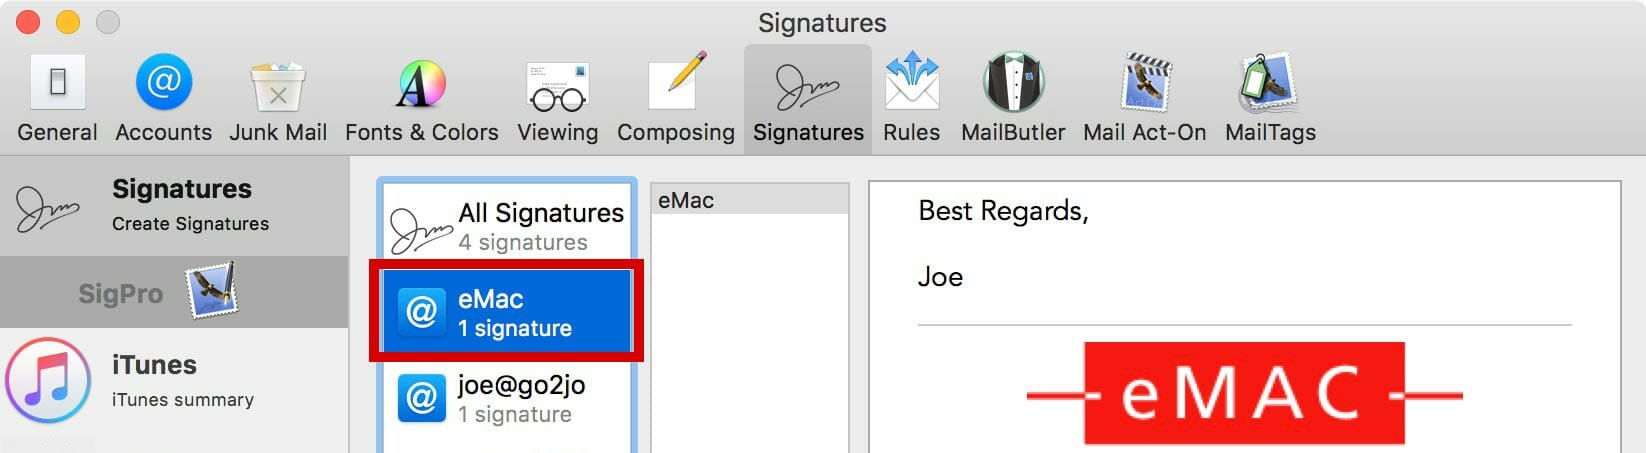 Select the account you want the new signature in.